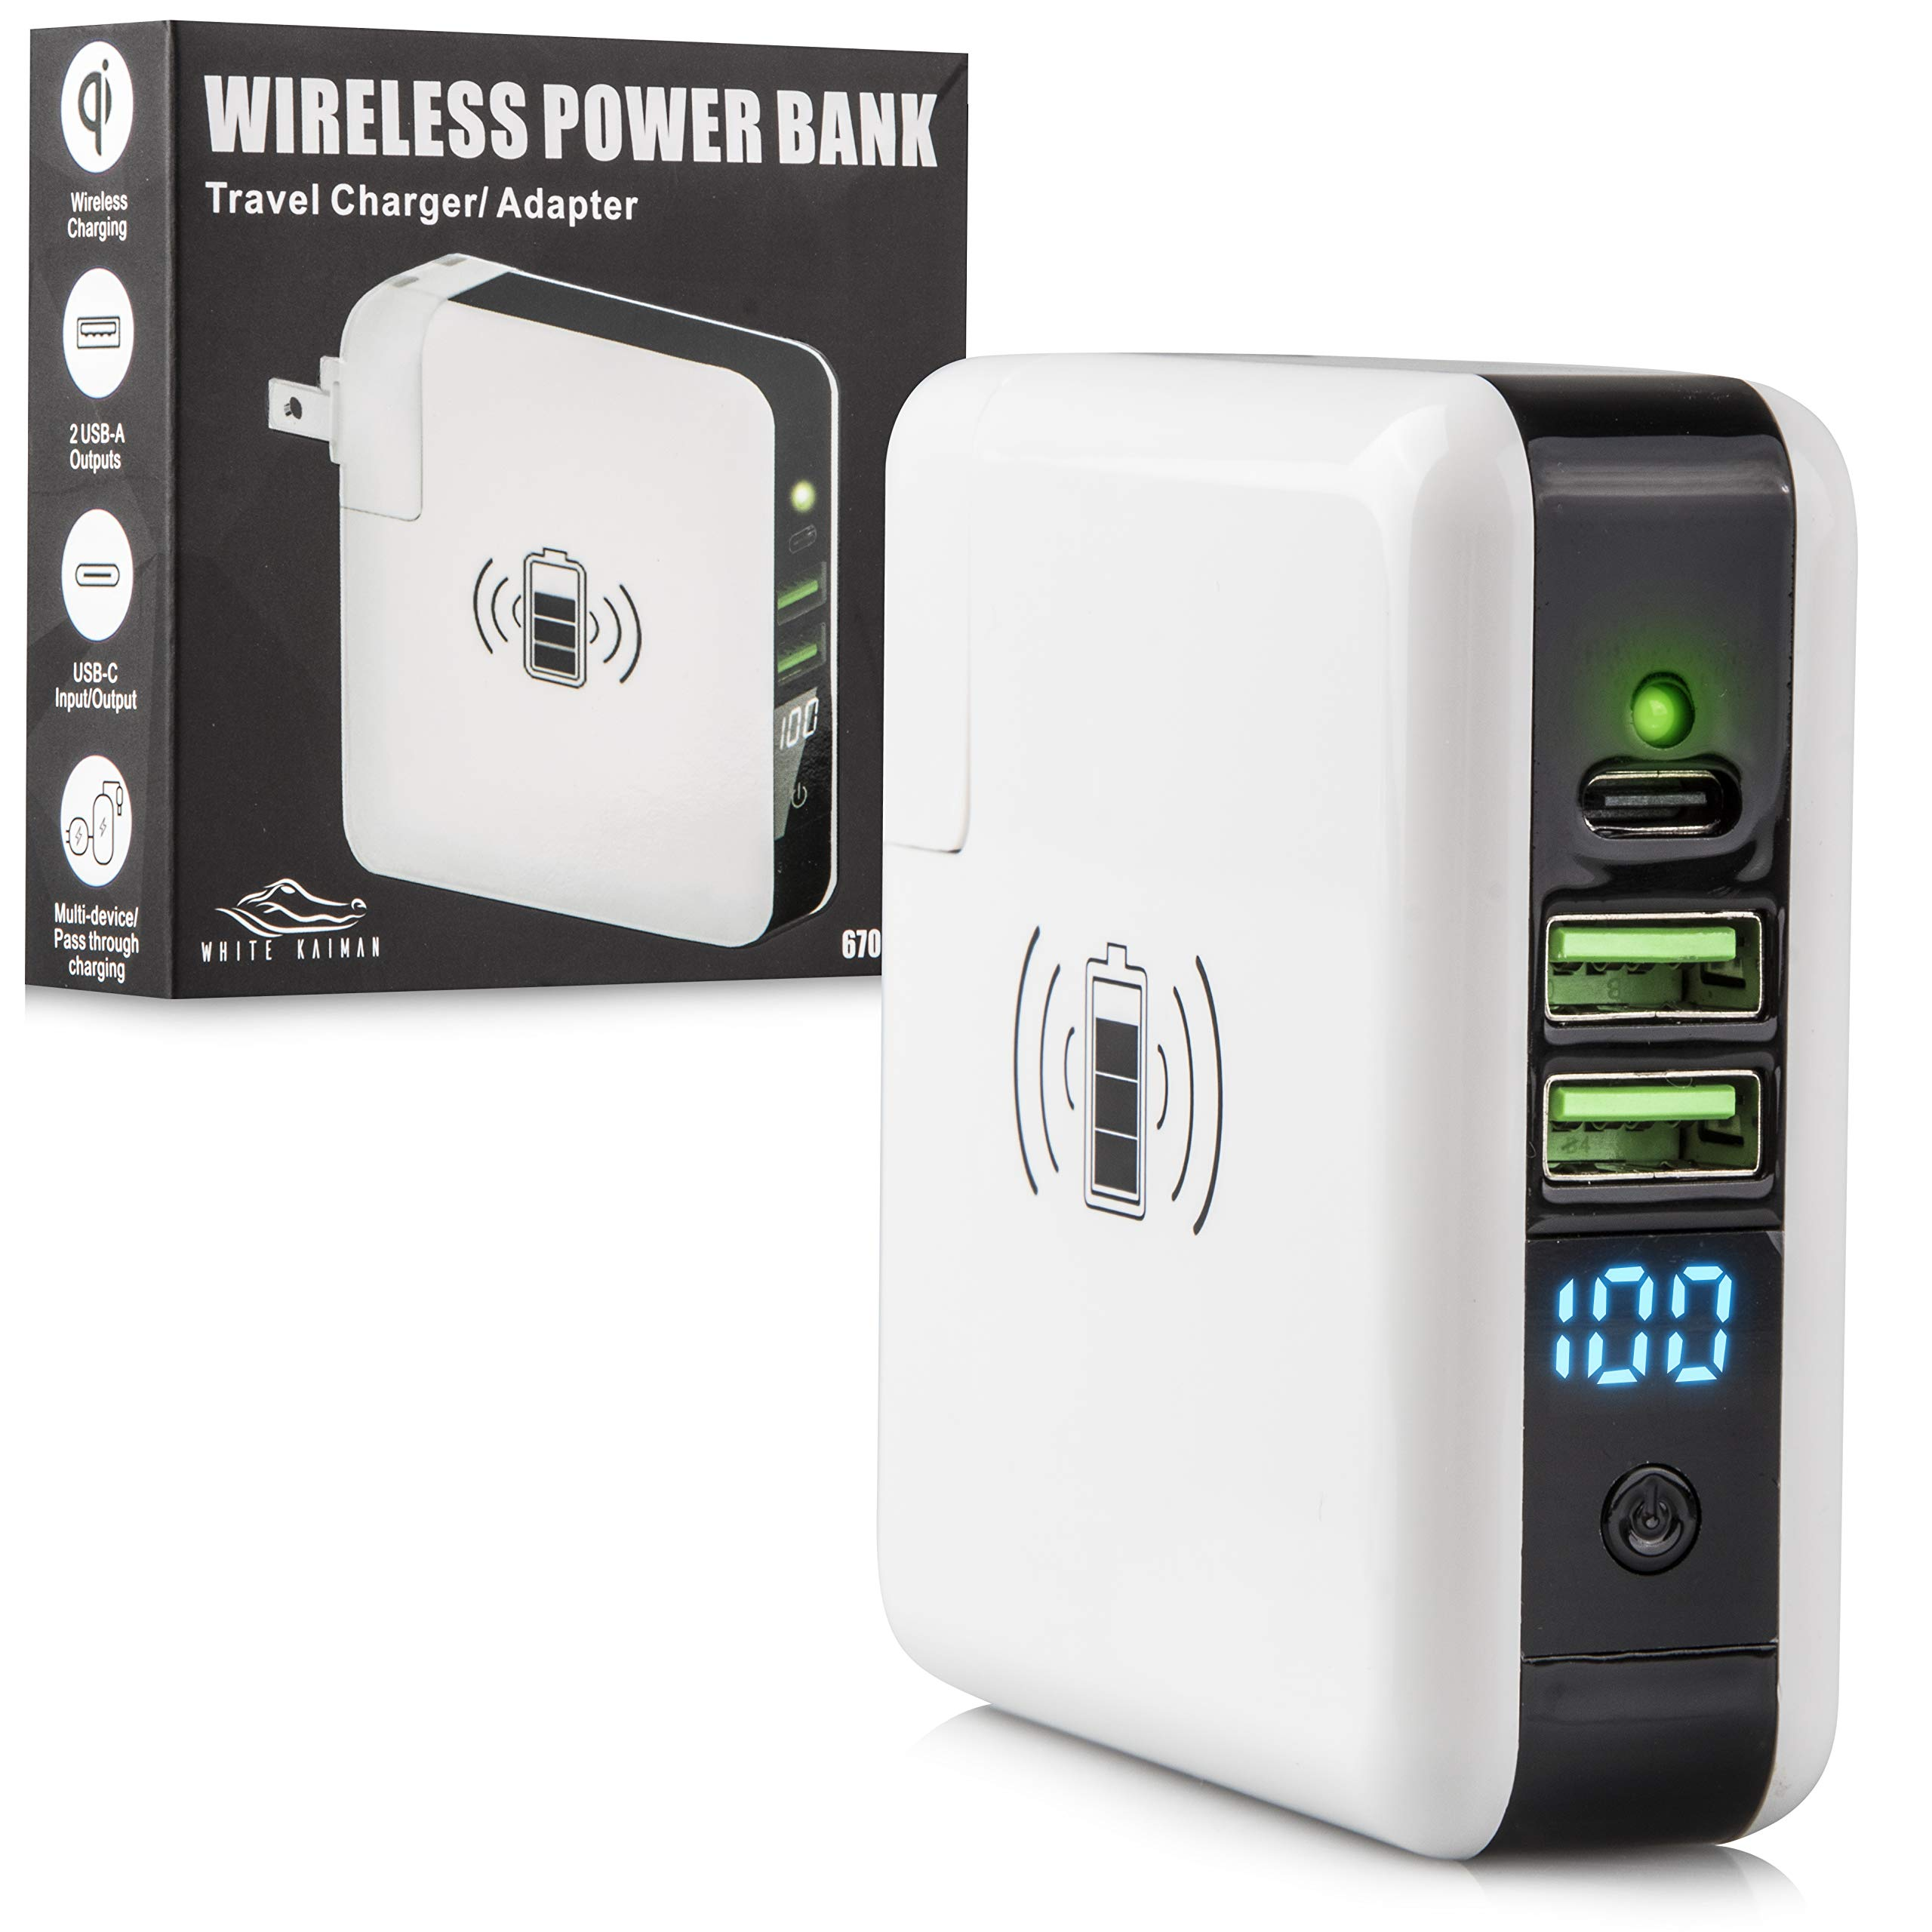 White Kaiman Wireless Power Bank: Portable Battery Charge Pack with 2 USB A, 1 USB C, and QI Fast Charging Pad - External Backup Wall Charger for Mobile Phone, Laptop, and More - Slim Travel Charger